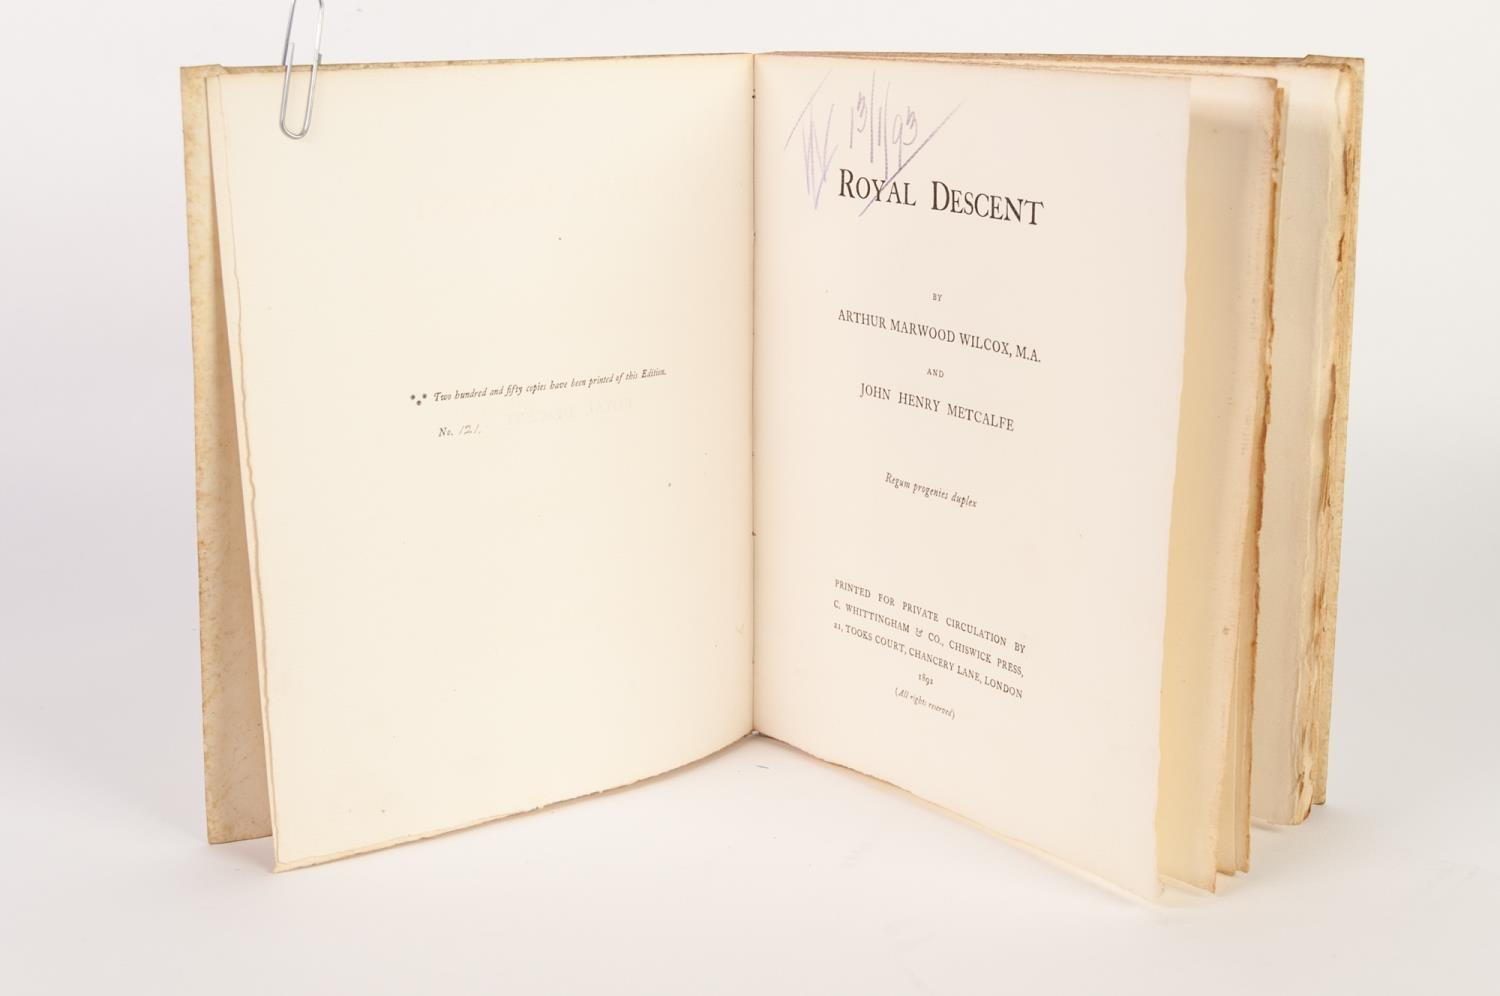 Lot 149 - Arthur Marwood Wilcox and John Henry Metcalf- Royal Decent, printed for private circulation 1892.